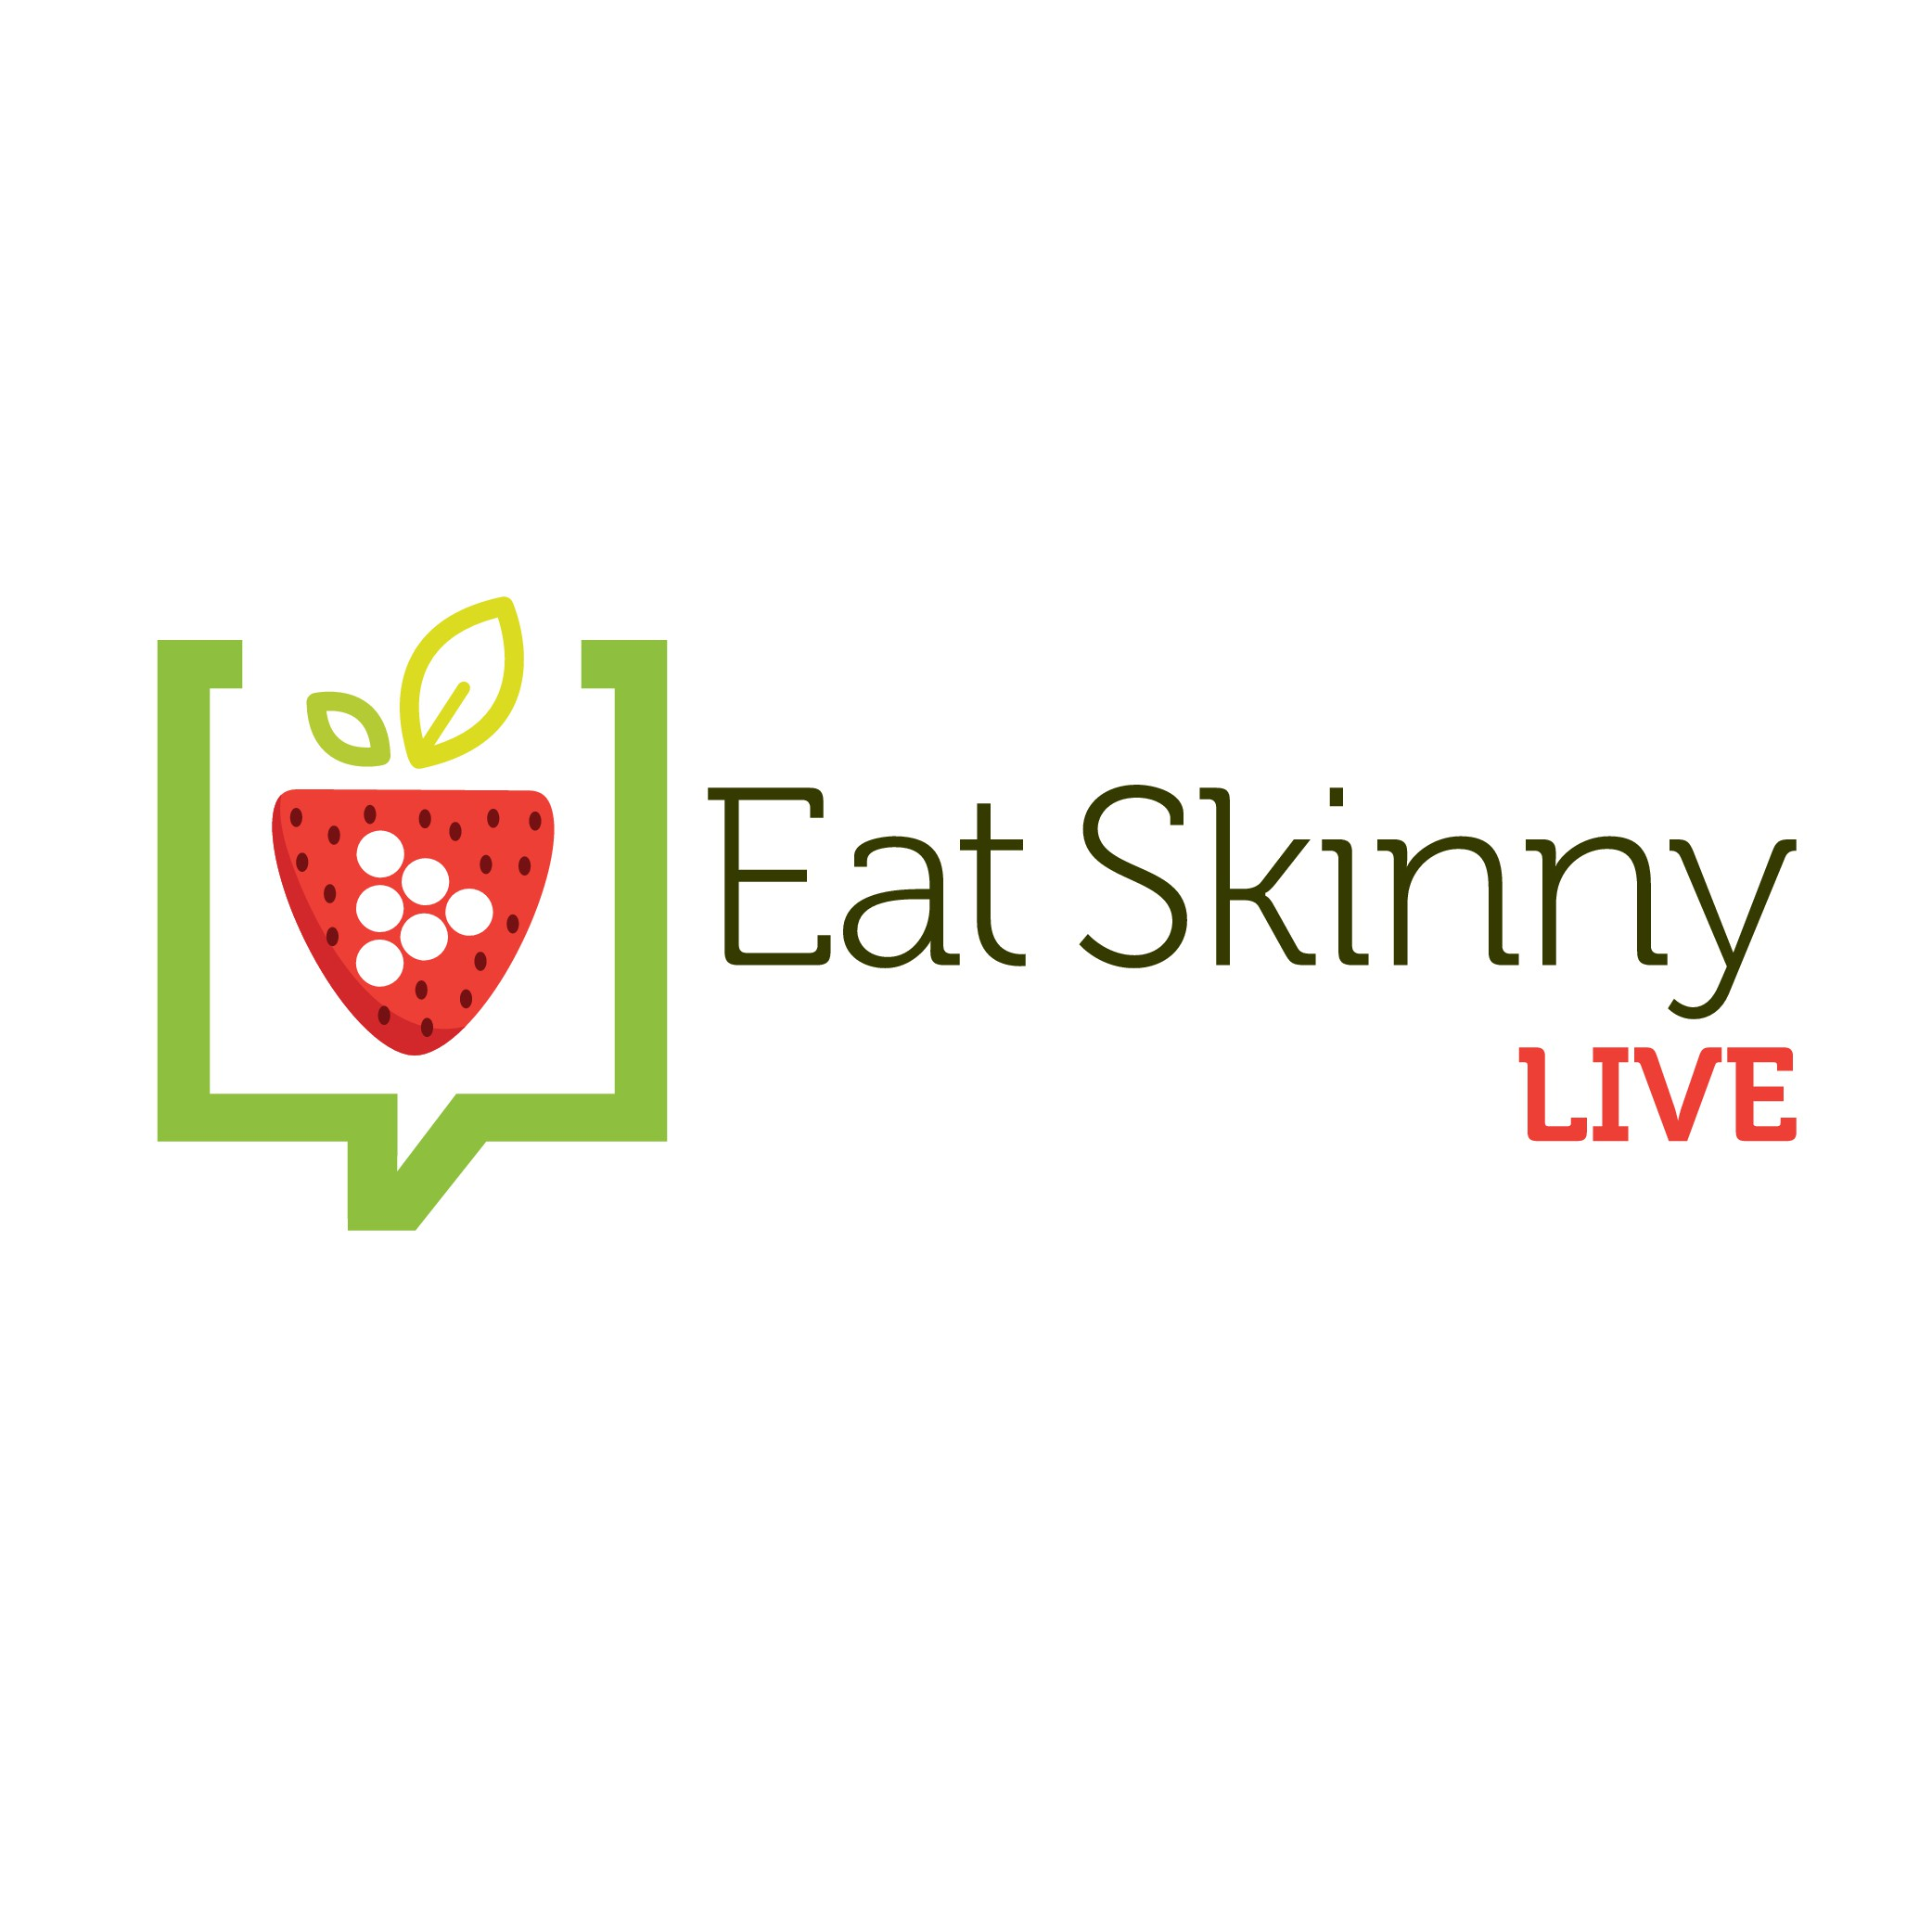 Create a fun, weight losing logo for cooking healthy/skinny meals.